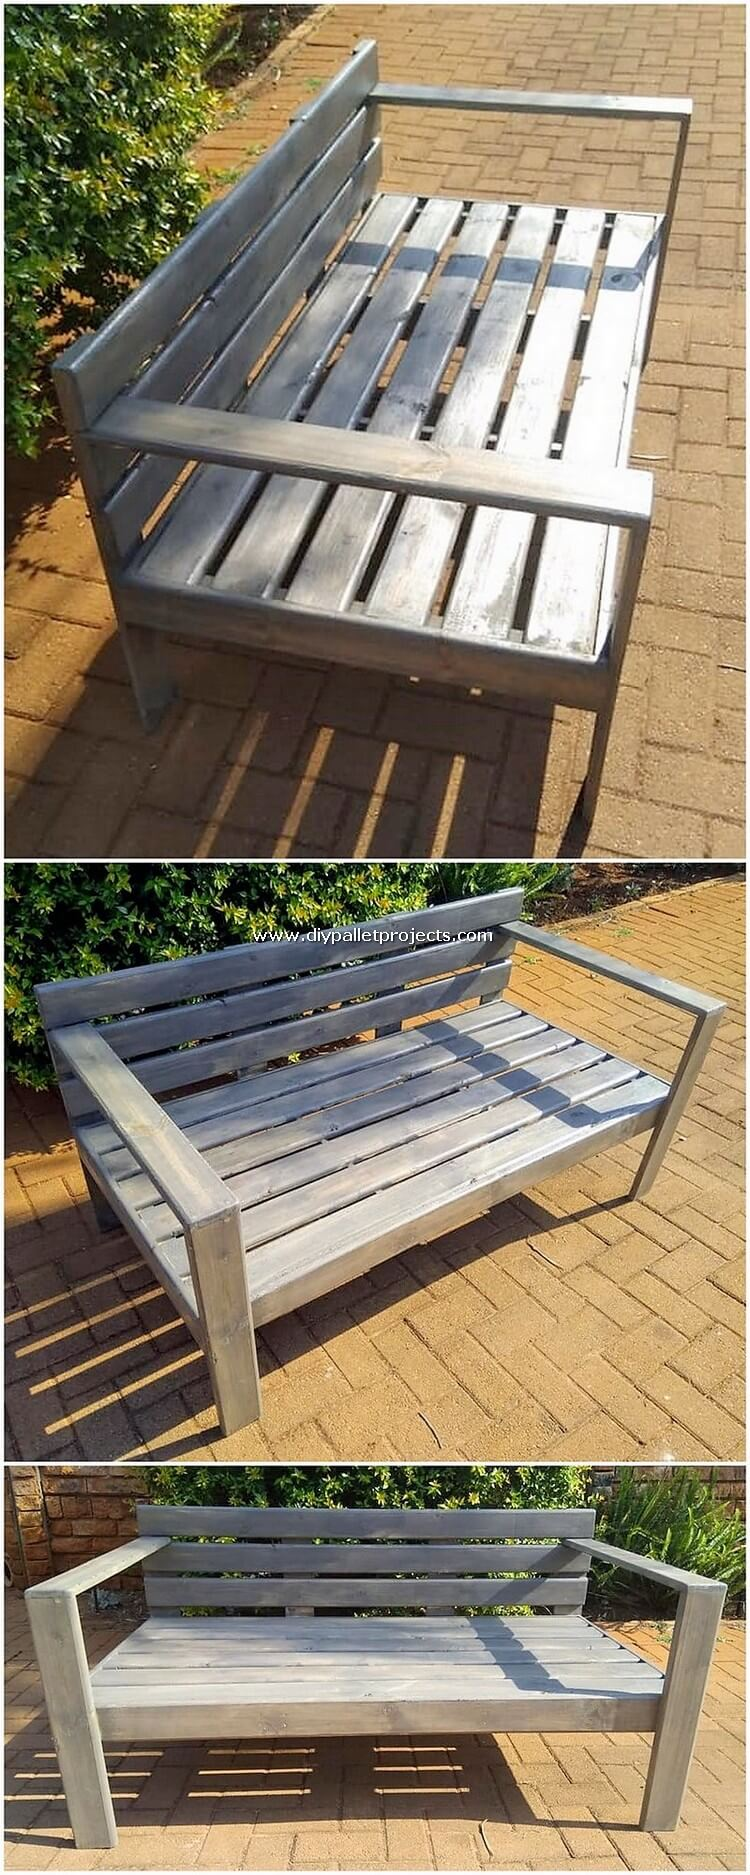 Outstanding Cheap And Classy Ideas With Shipping Pallets Diy Pallet Pdpeps Interior Chair Design Pdpepsorg